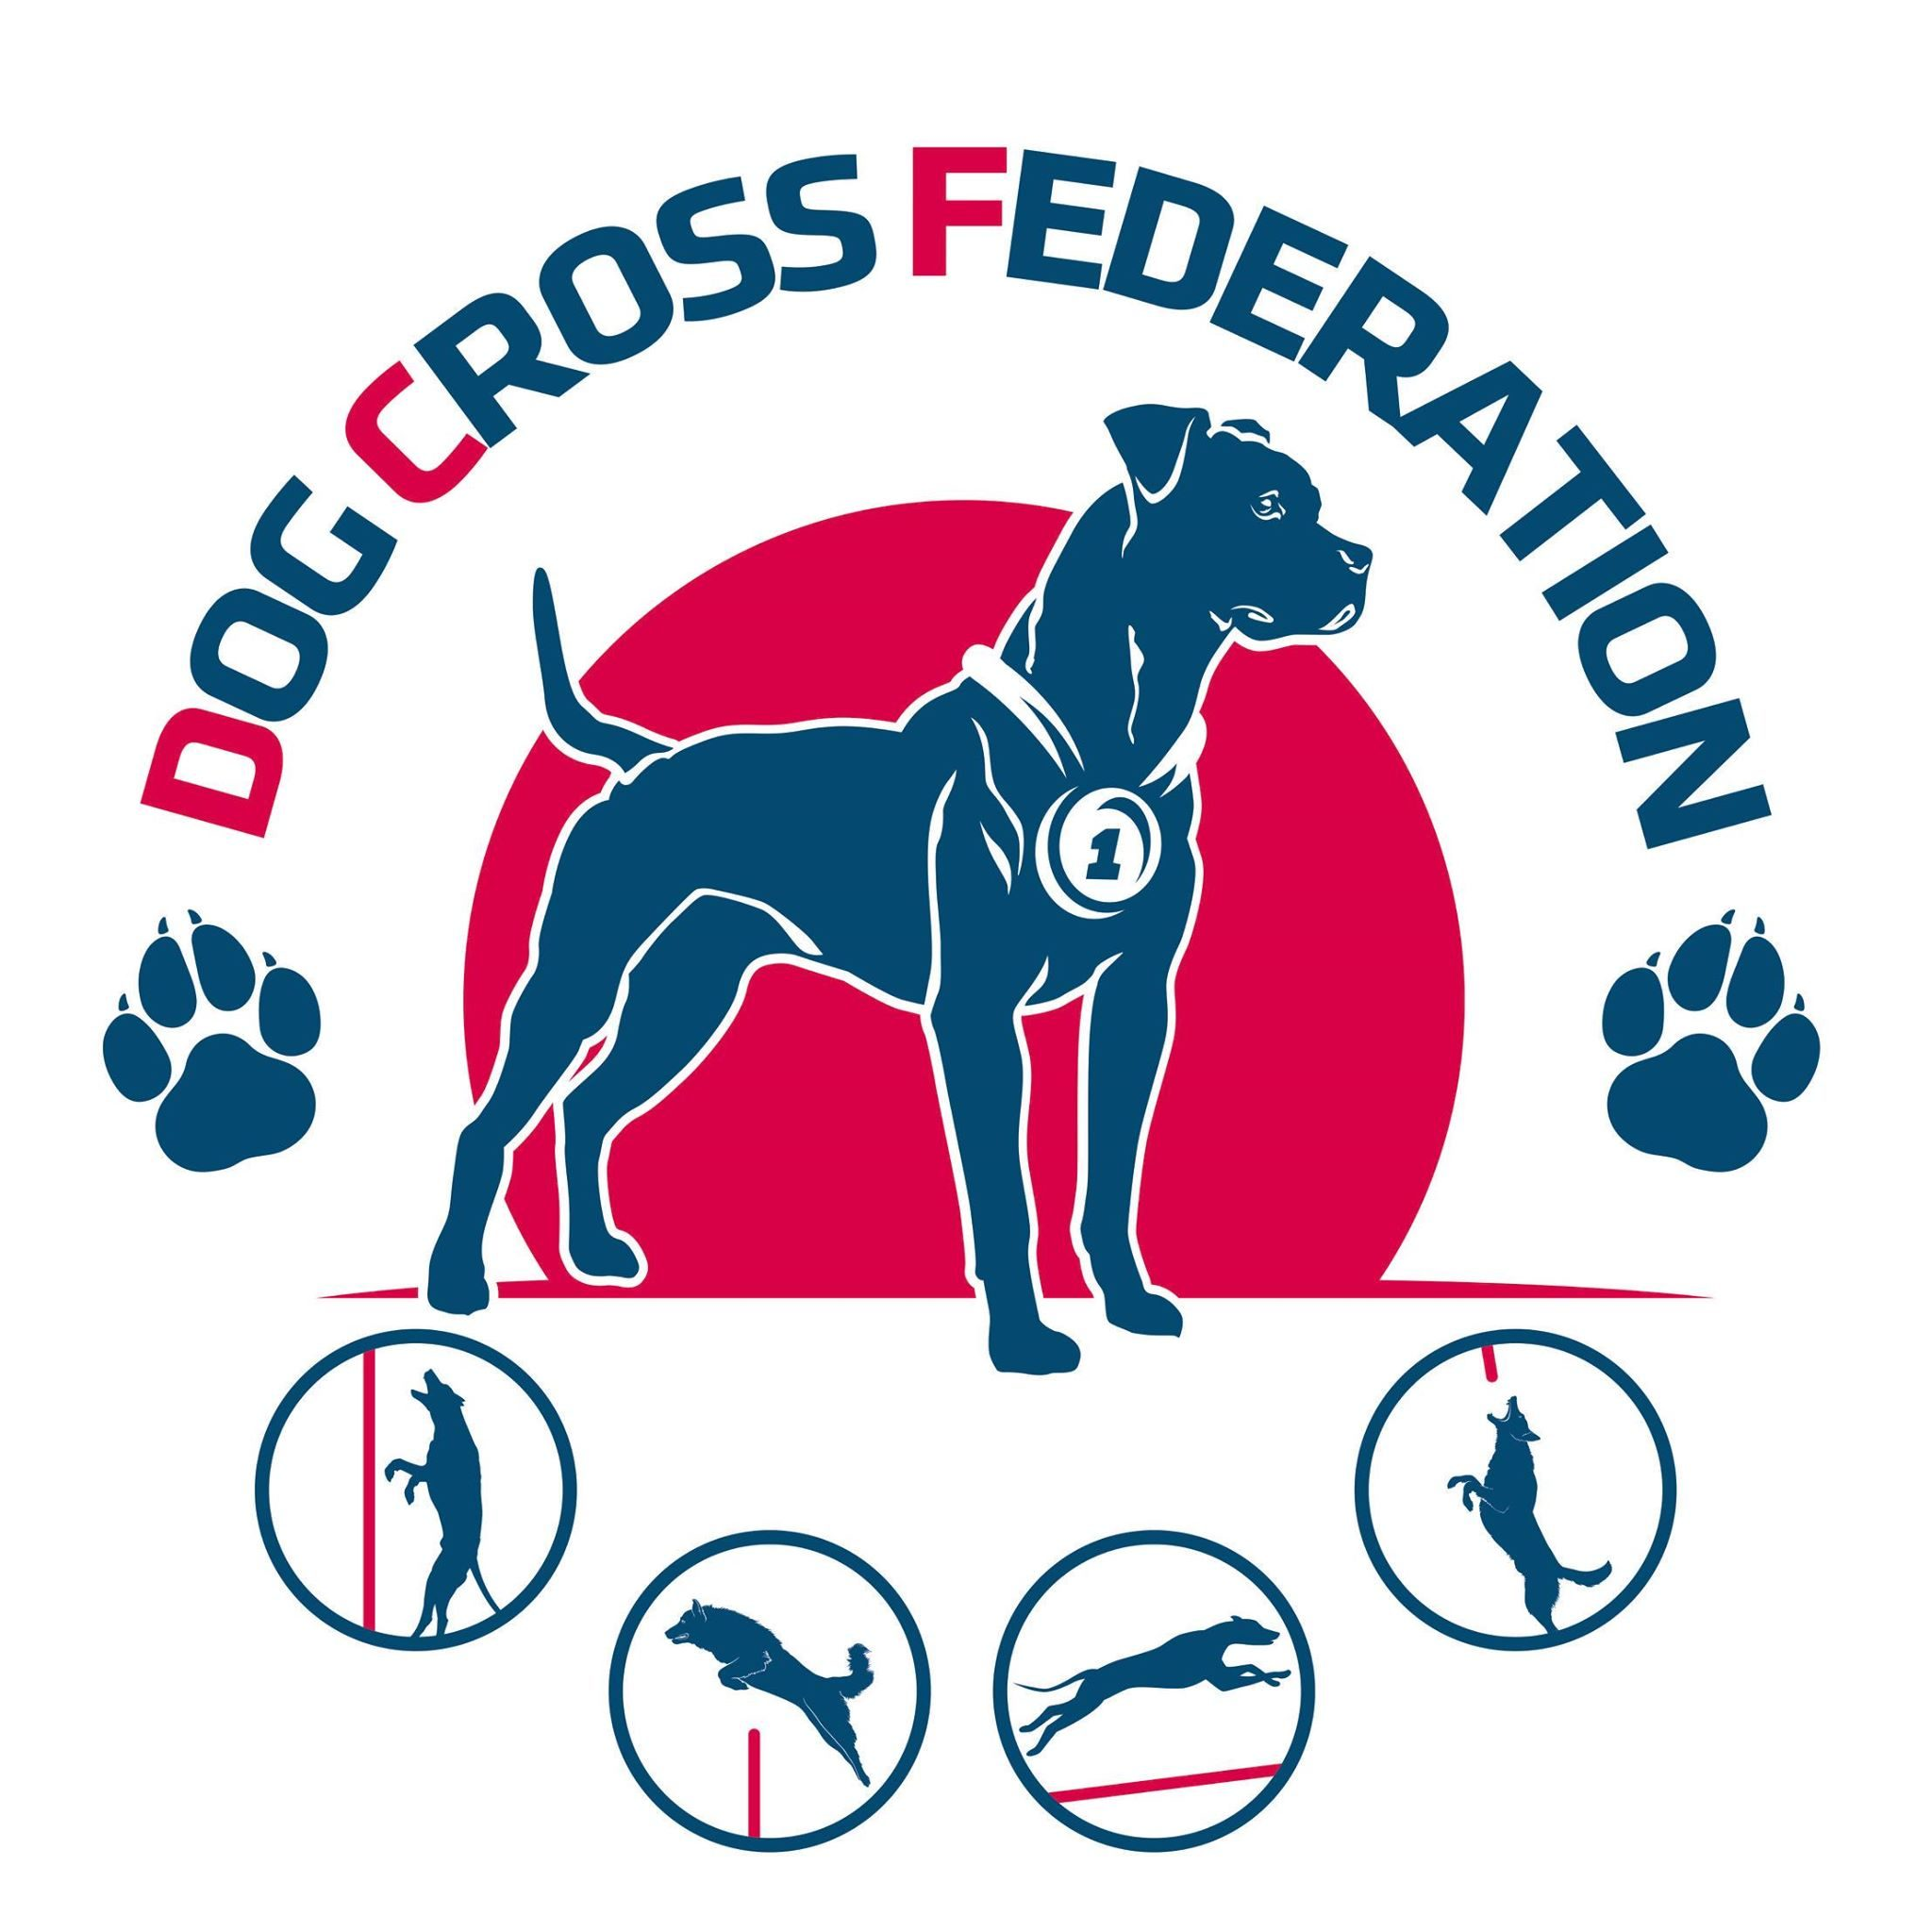 Dog Cross Federation